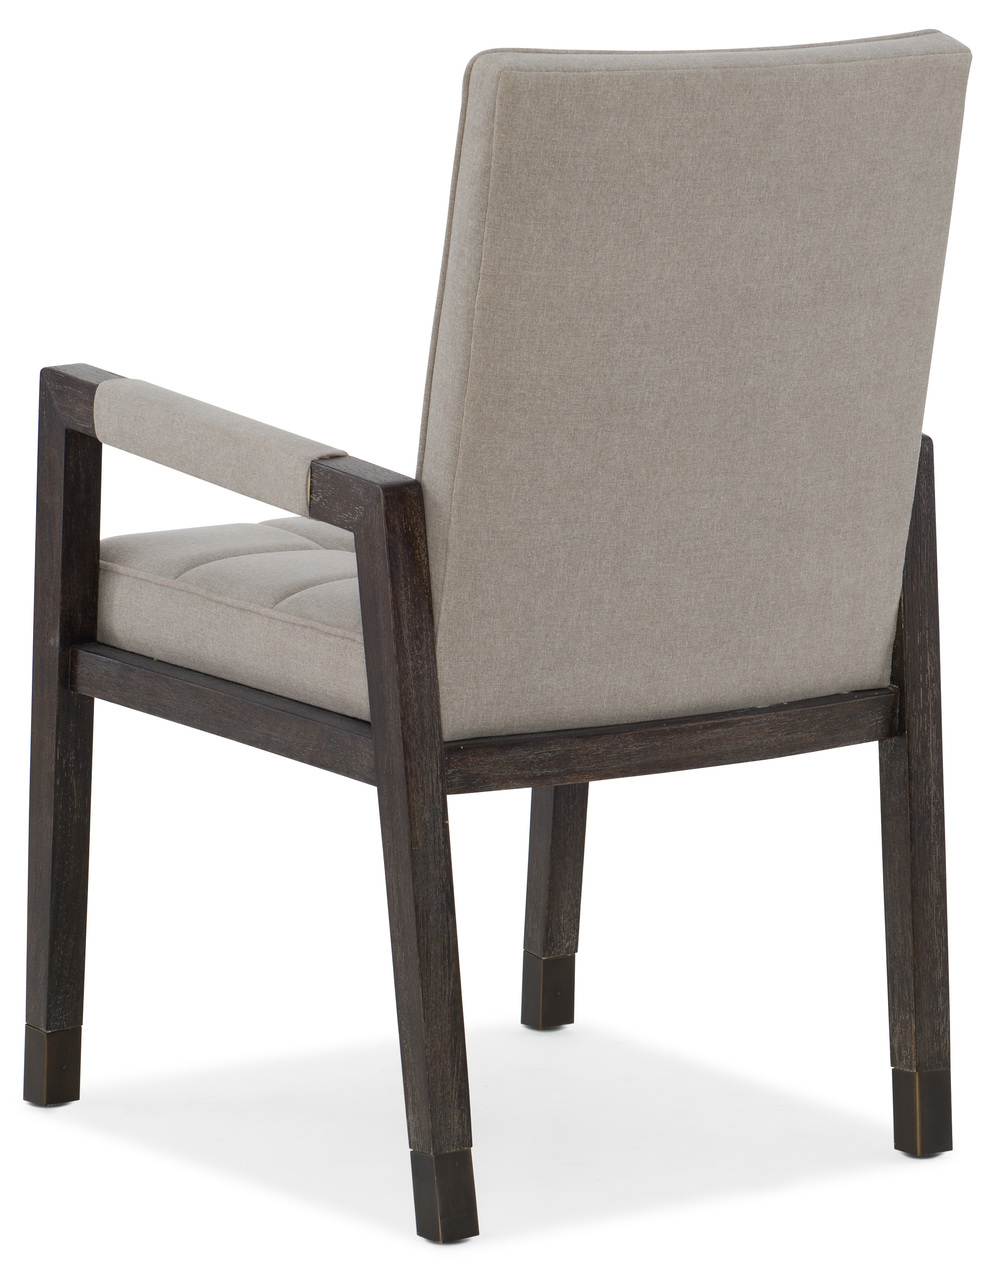 Hooker Furniture - Cupertino Upholstered Arm Chair